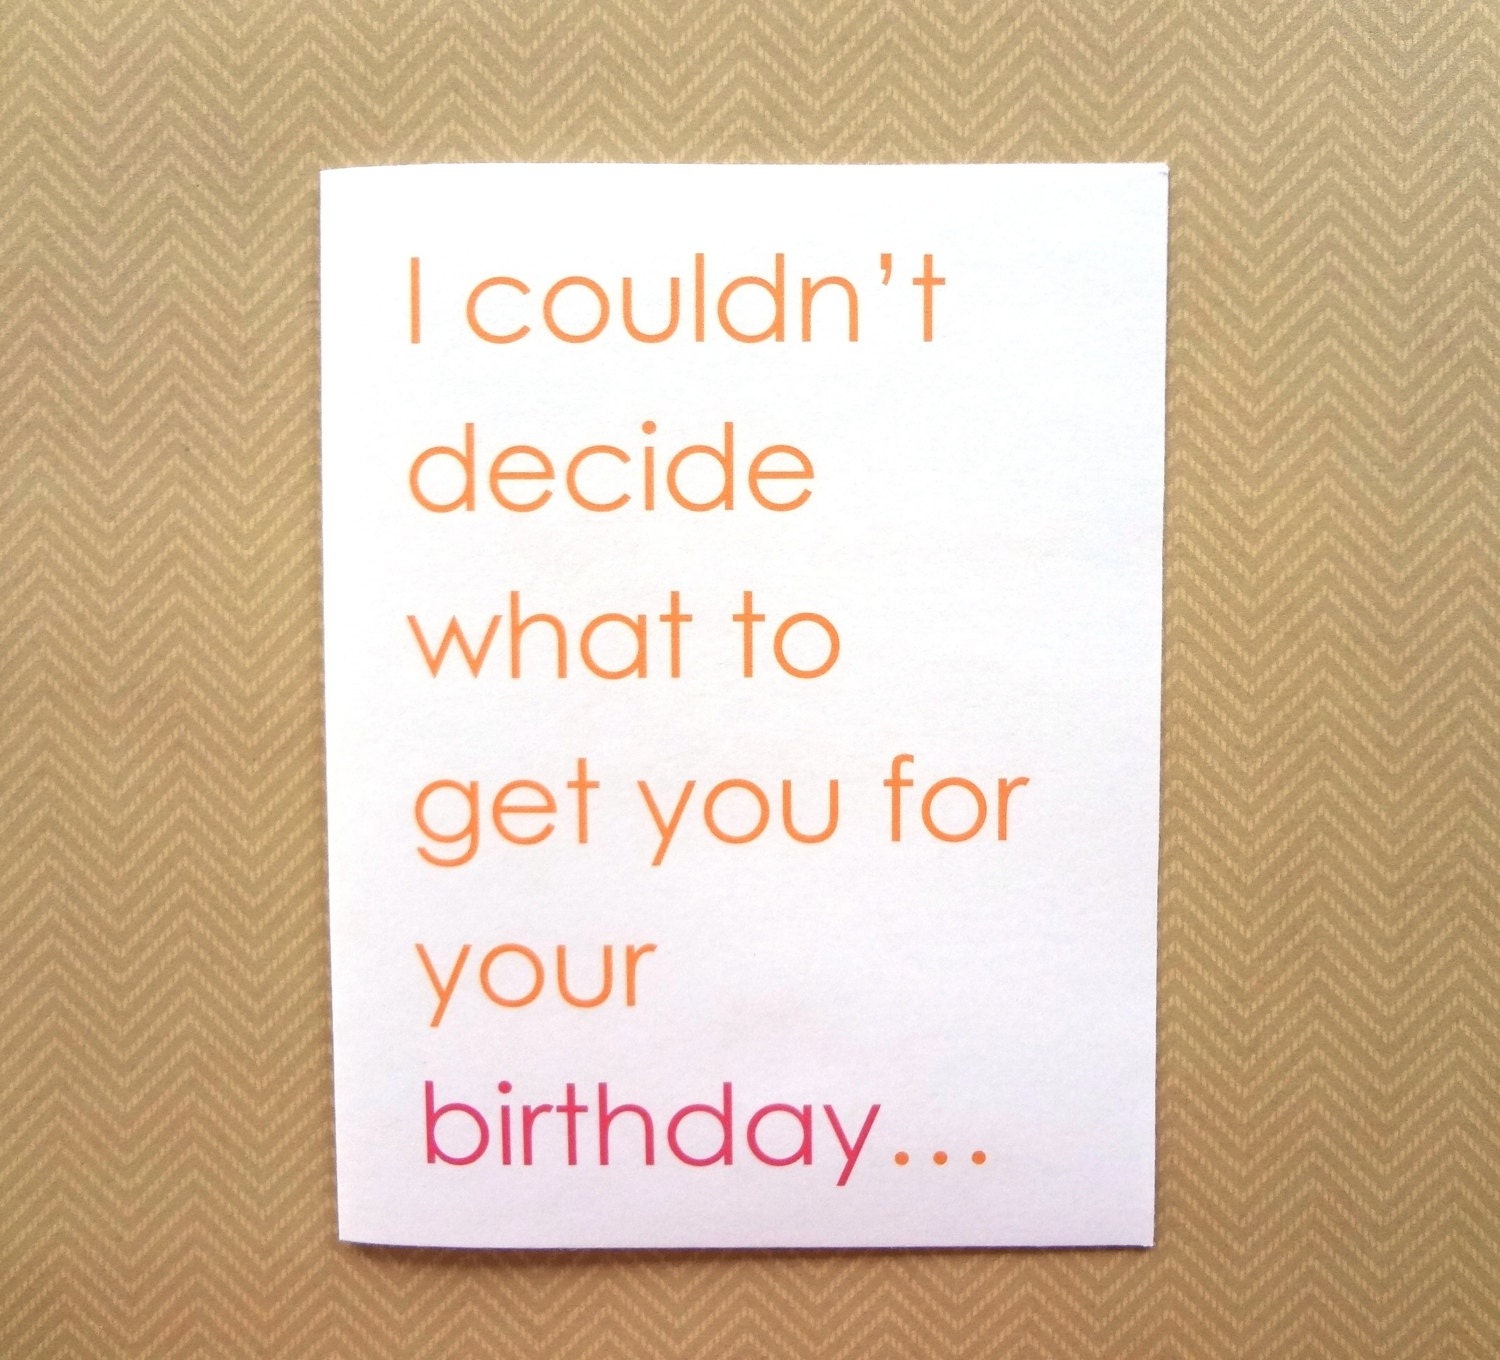 Funny Birthday Card Sayings For Wife Birthday wife graphics